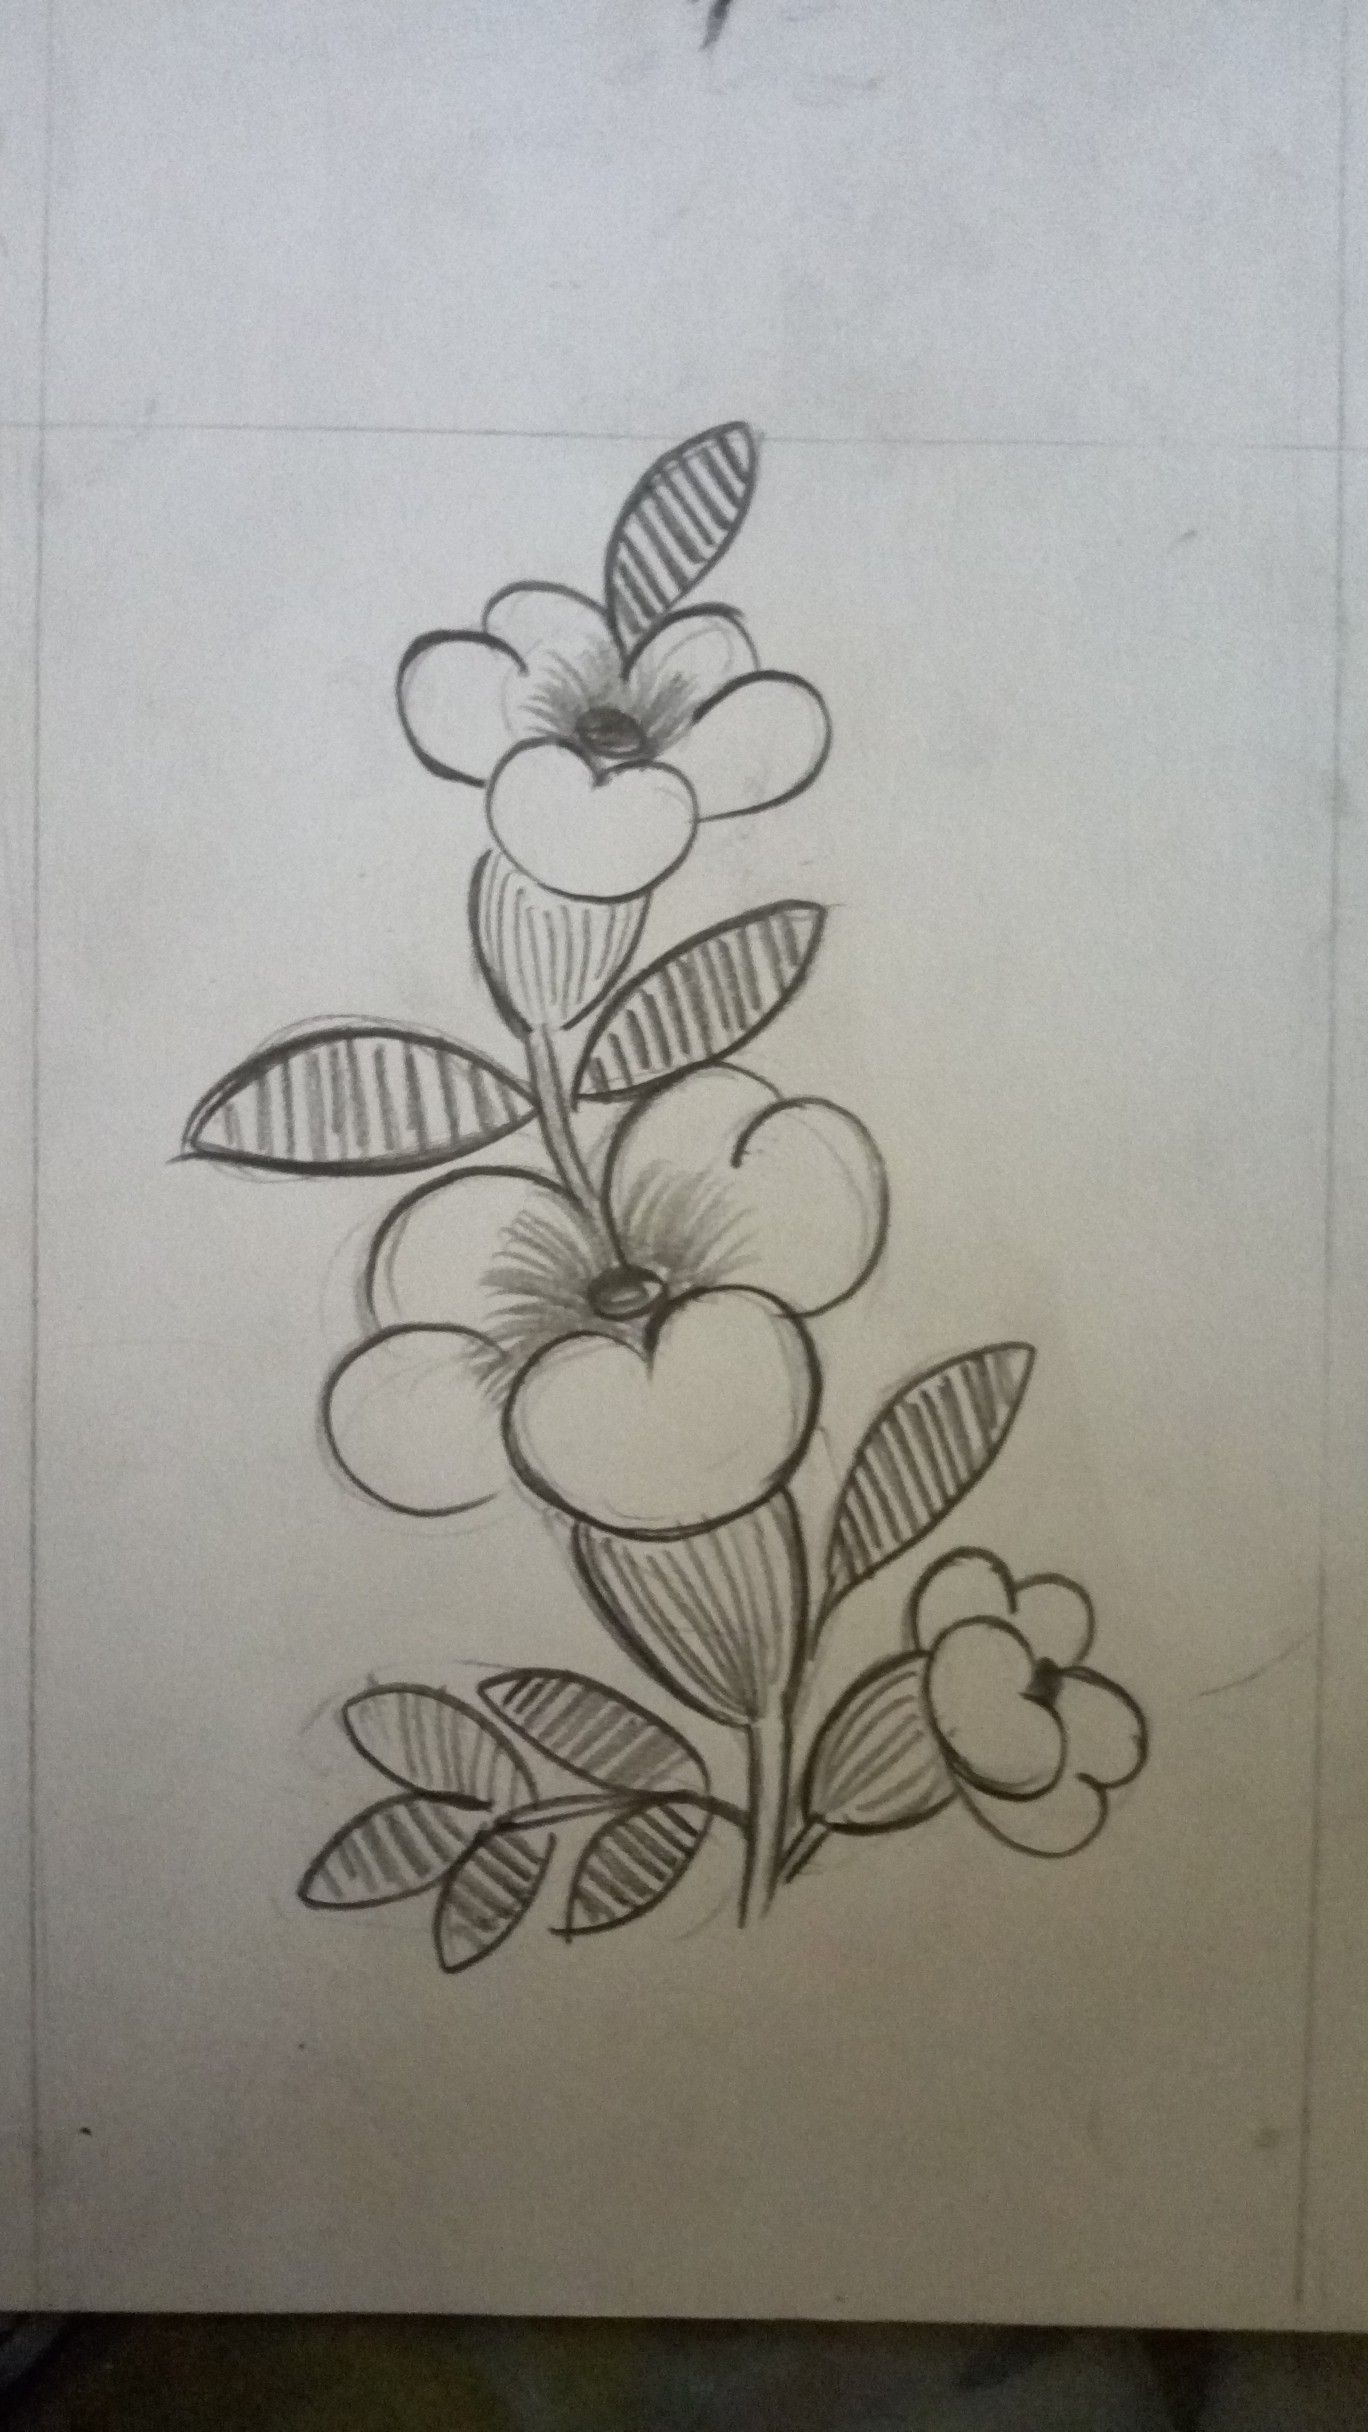 Butta hand embroidery designs embroidery art kolam designs hand designs basic sketching